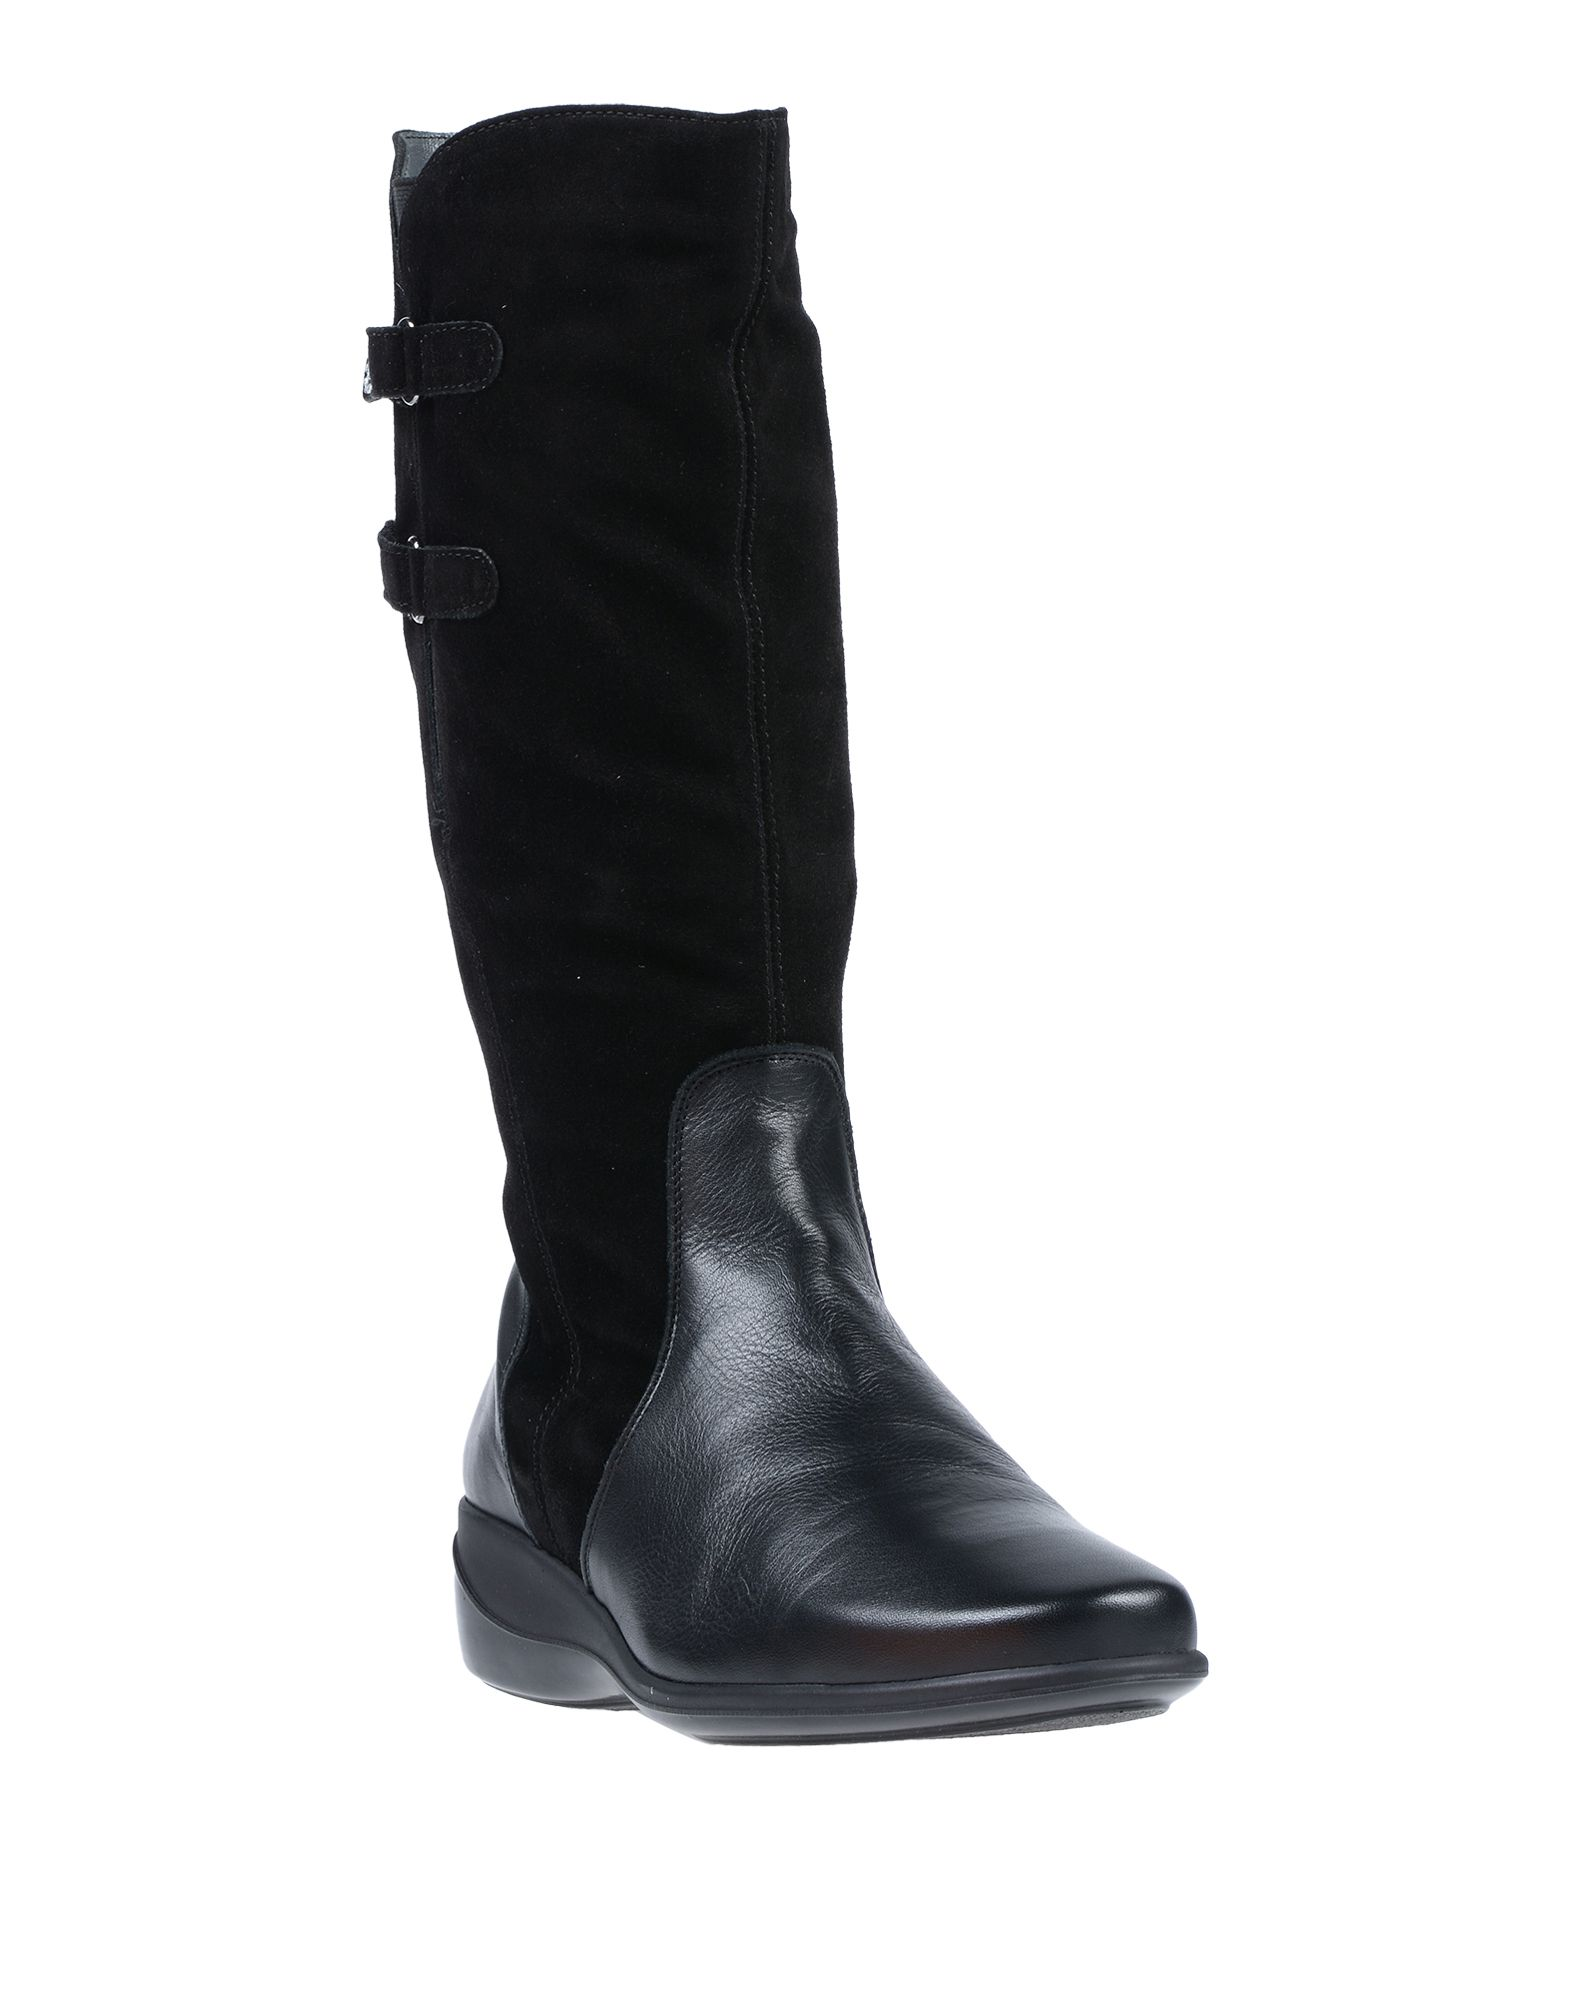 Valleverde Boots - Women Valleverde Valleverde Valleverde Boots online on  United Kingdom - 11554480KN 99e783